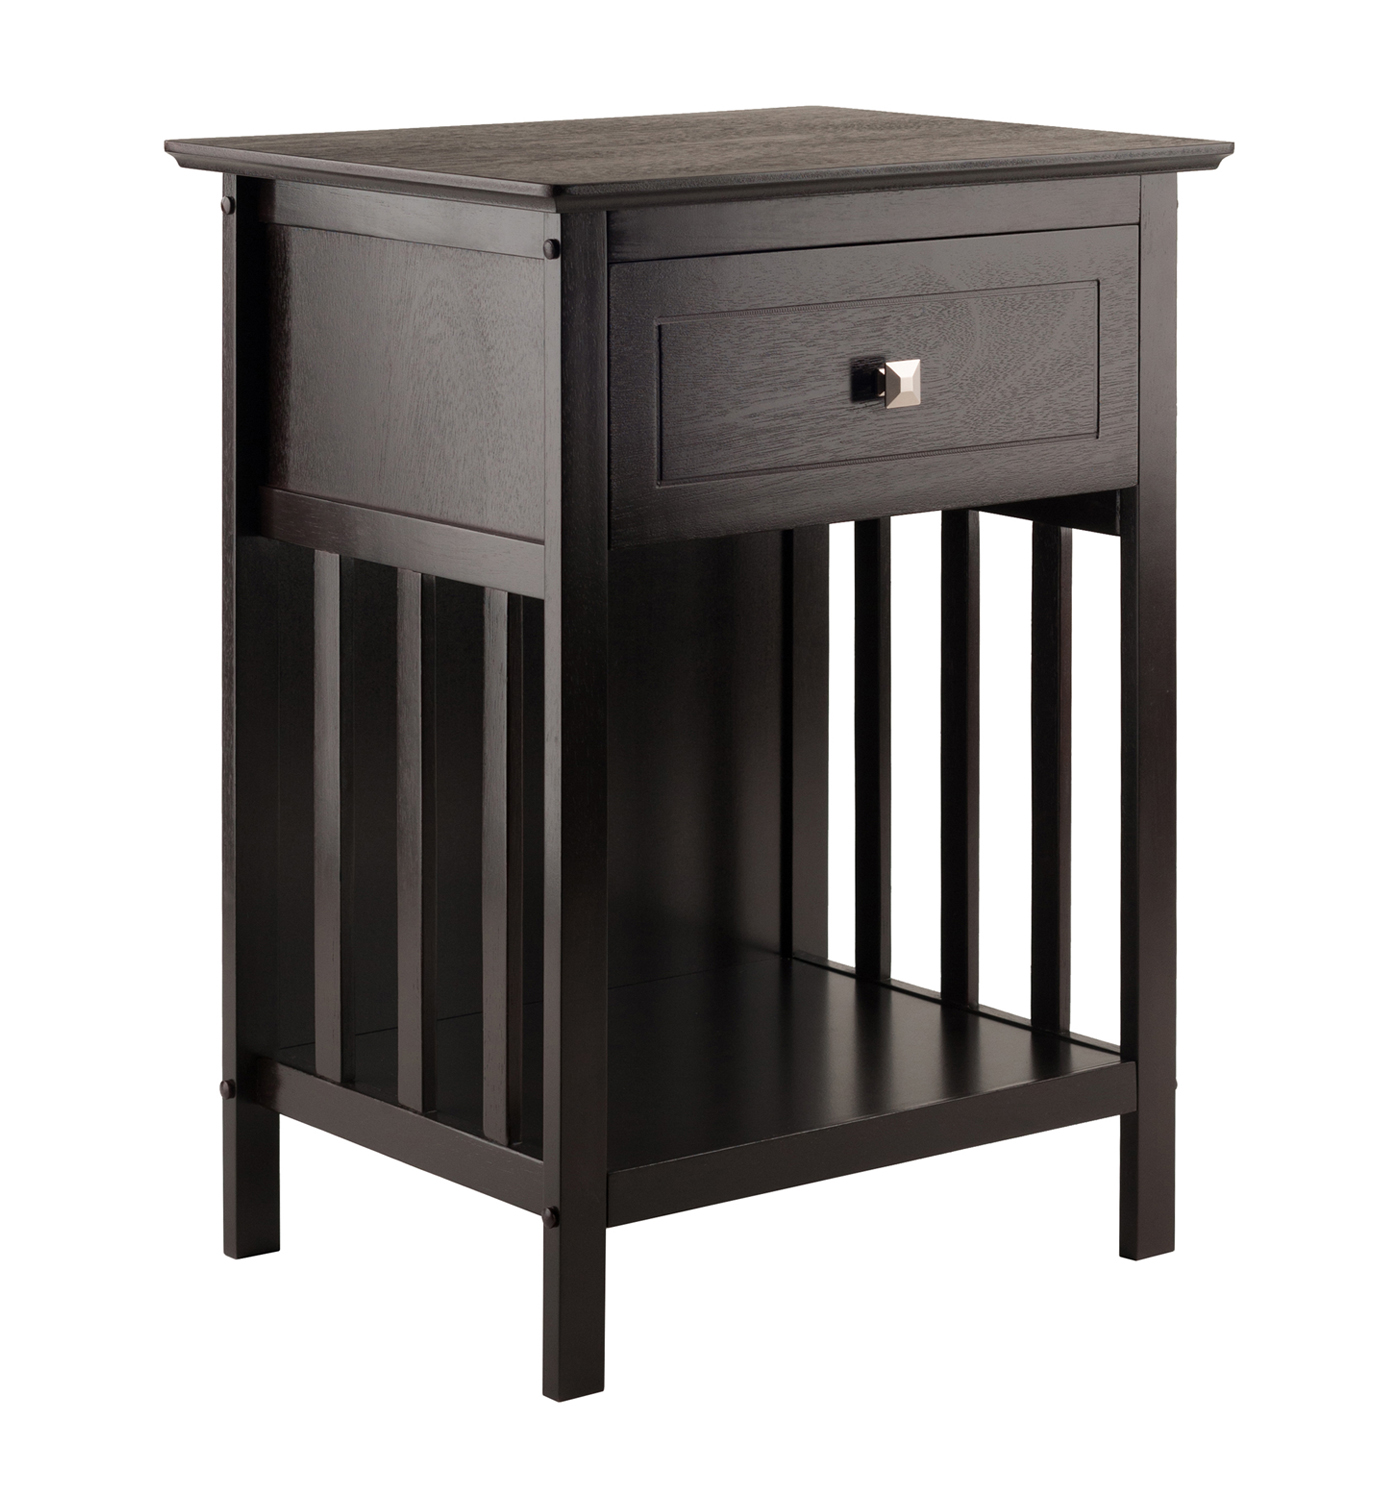 winsome marcel solid and composite wood accent table gray with drawer coffee finish white bedside cabinets gallerie coupon set red home accessories black marble dining patio